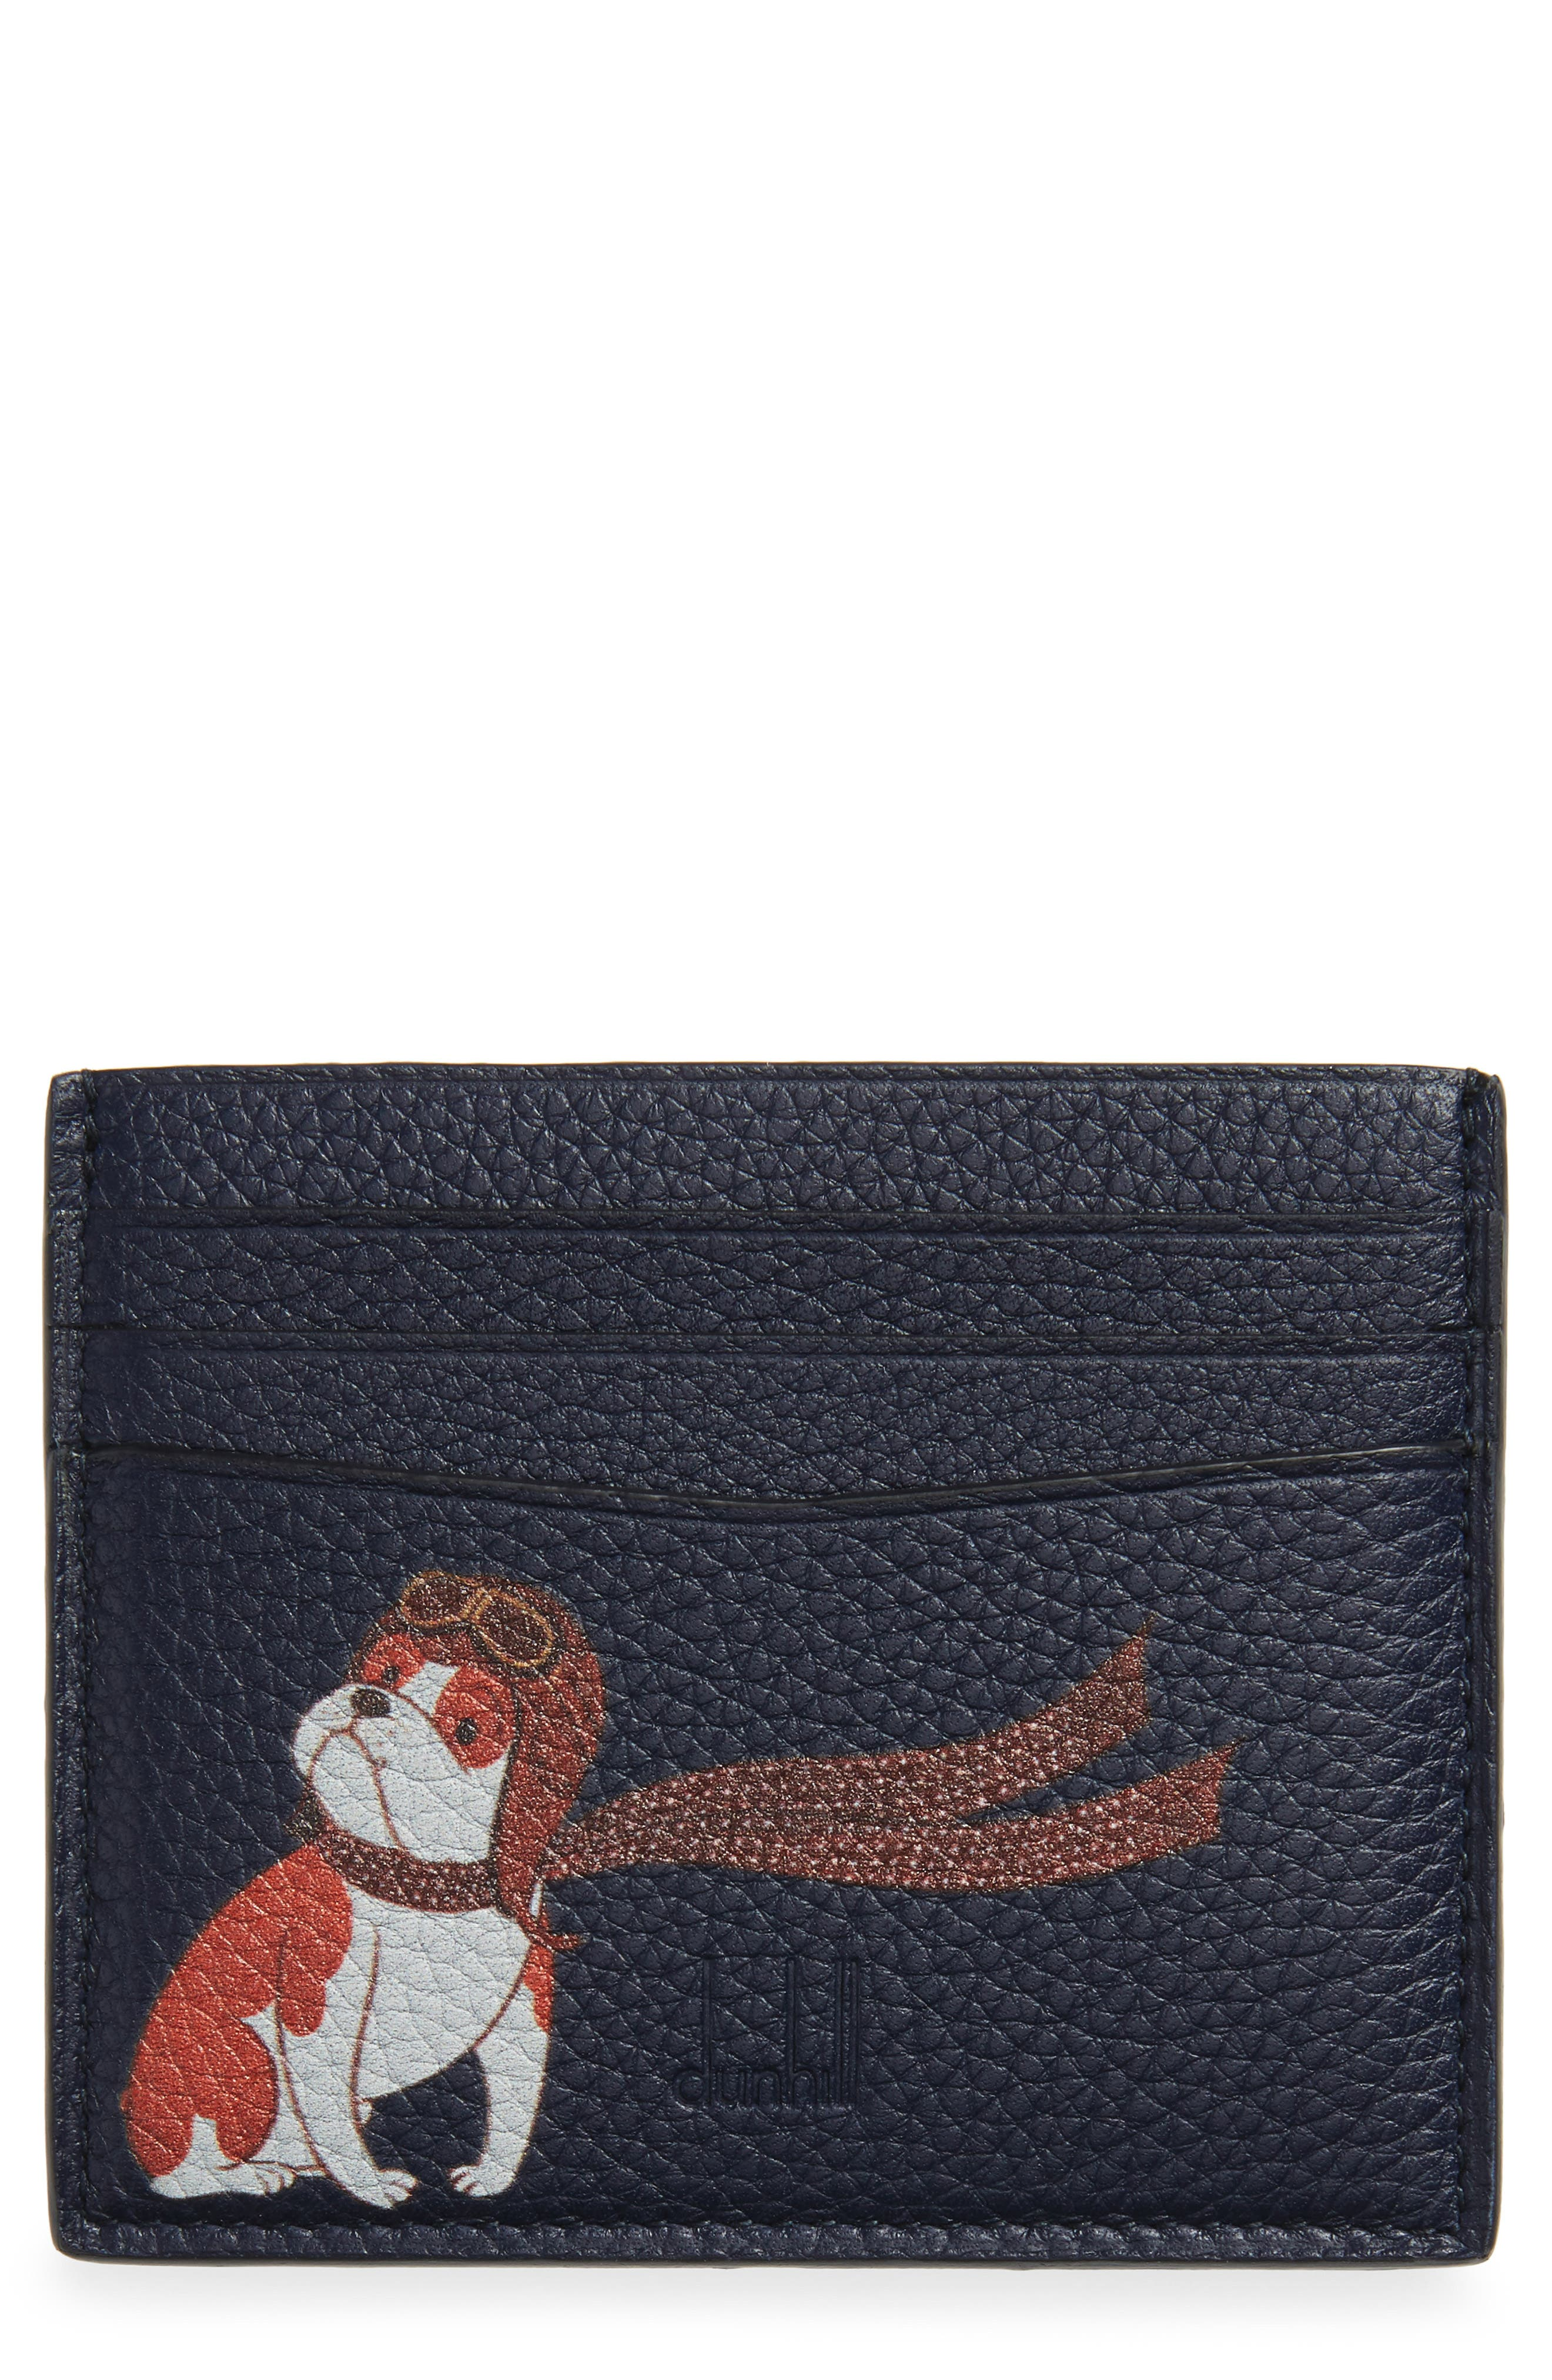 Boston Bulldog Leather Card Case,                             Main thumbnail 1, color,                             400